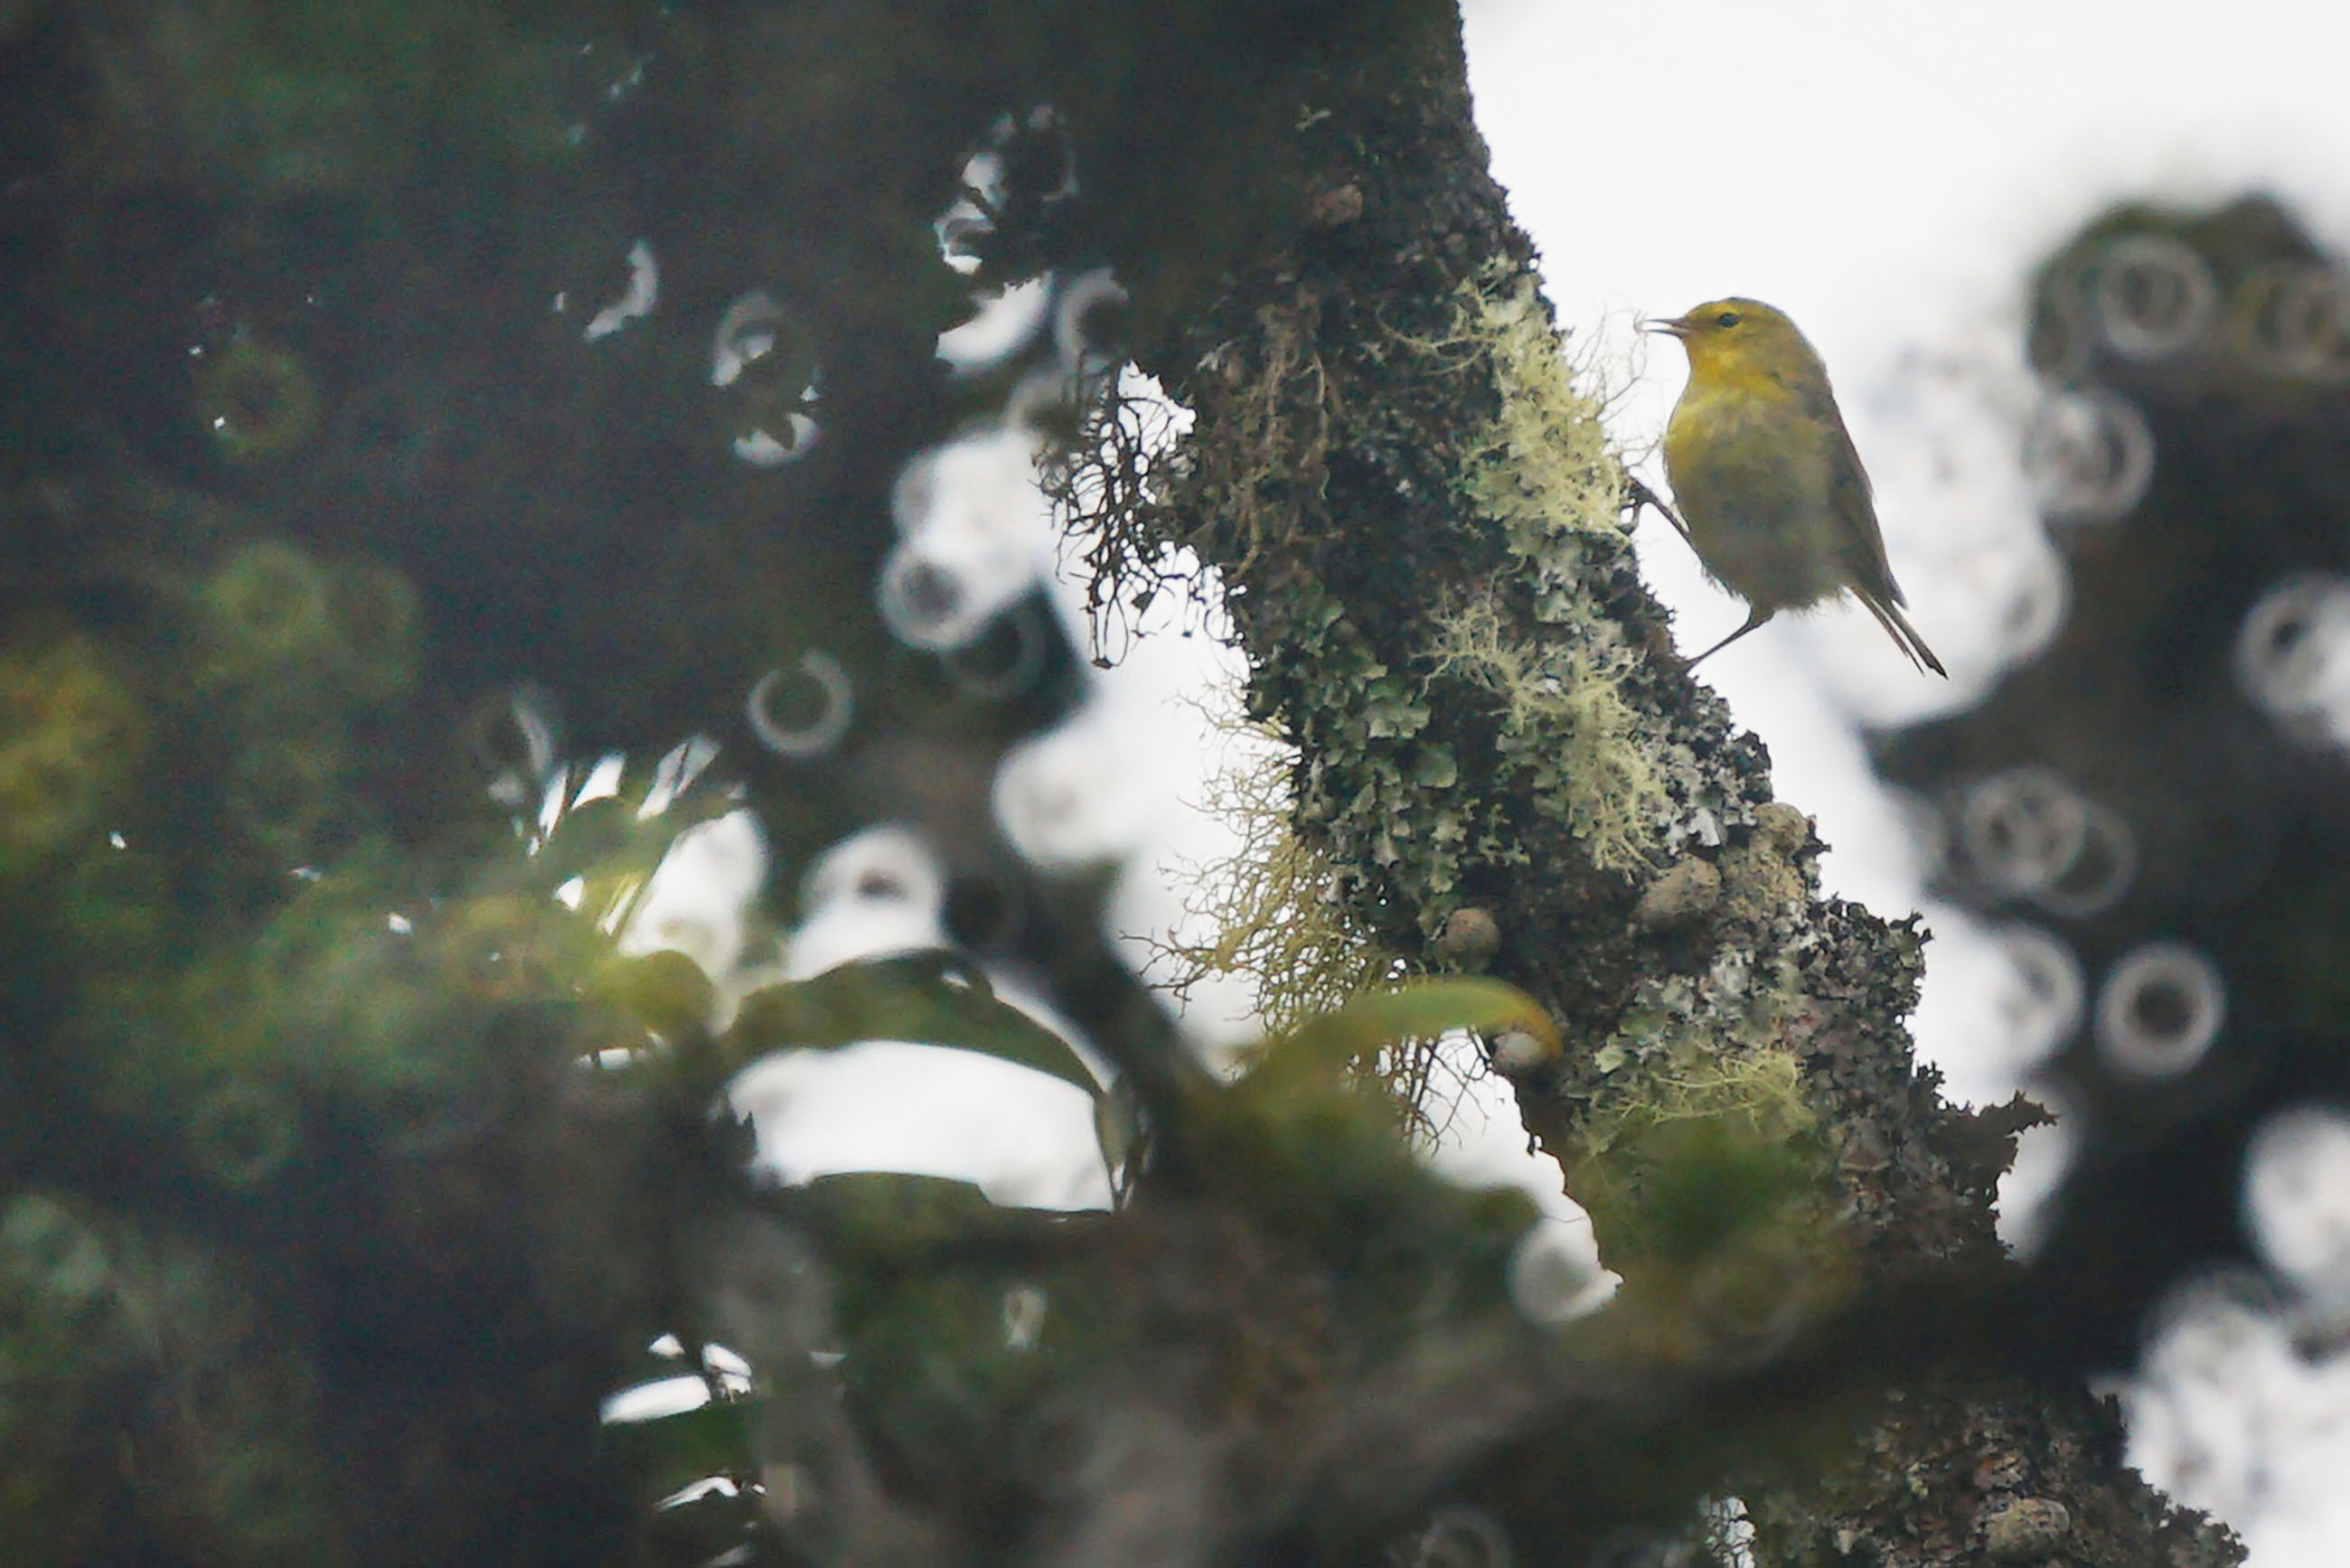 <p>A Maui Alauahio, or Maui Creeper, darted around an ohia lehua tree. The bird is now found only on east Maui, and its existencedepends on conservation and restoration of malaria-free forest habitat.</p>